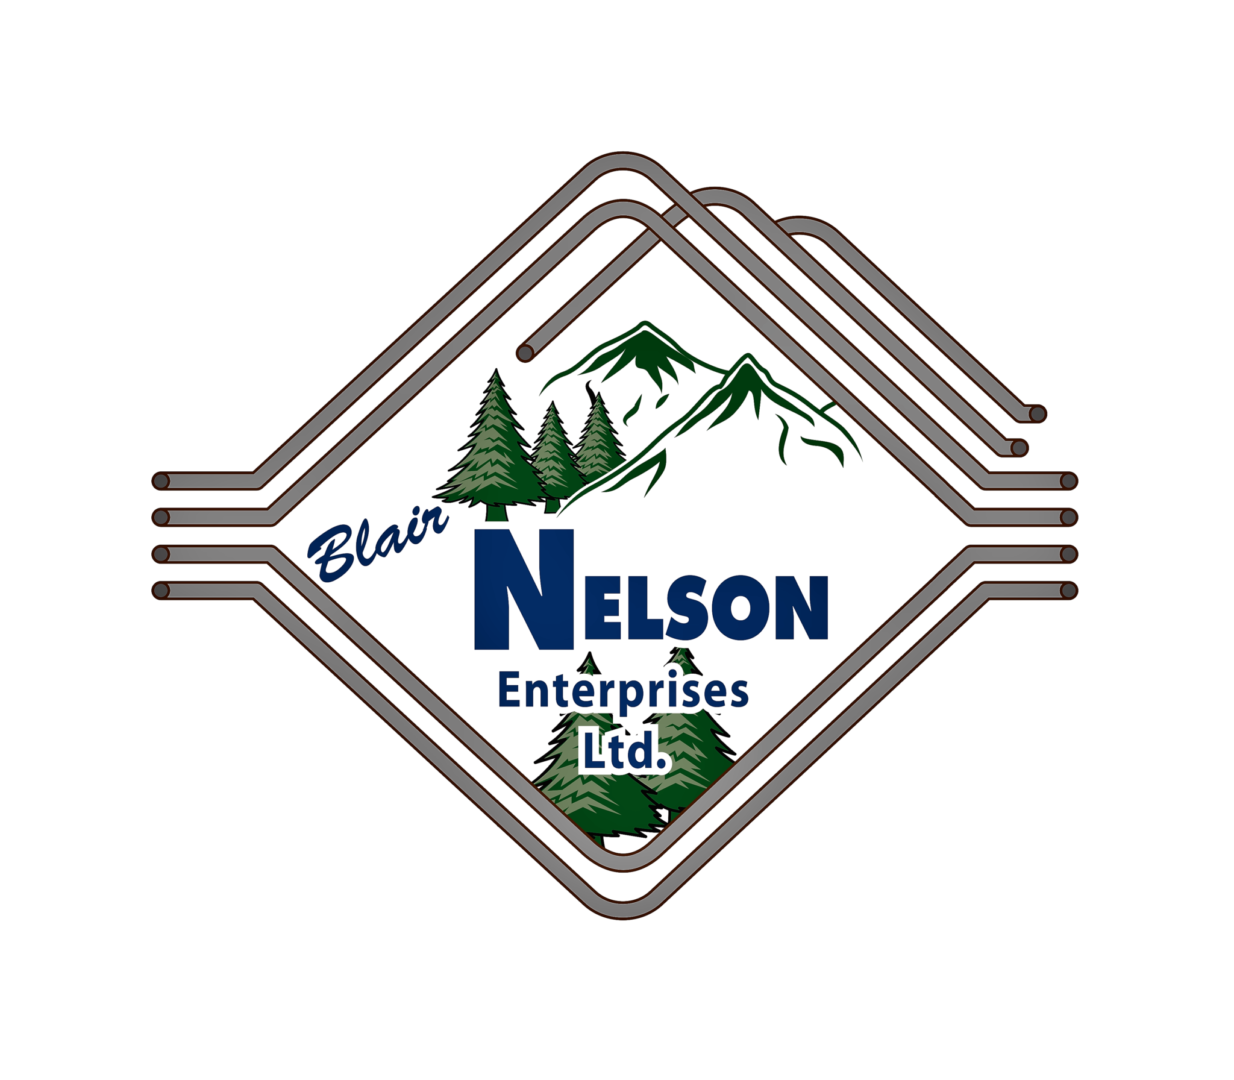 Blair Nelson Enterprises LTD